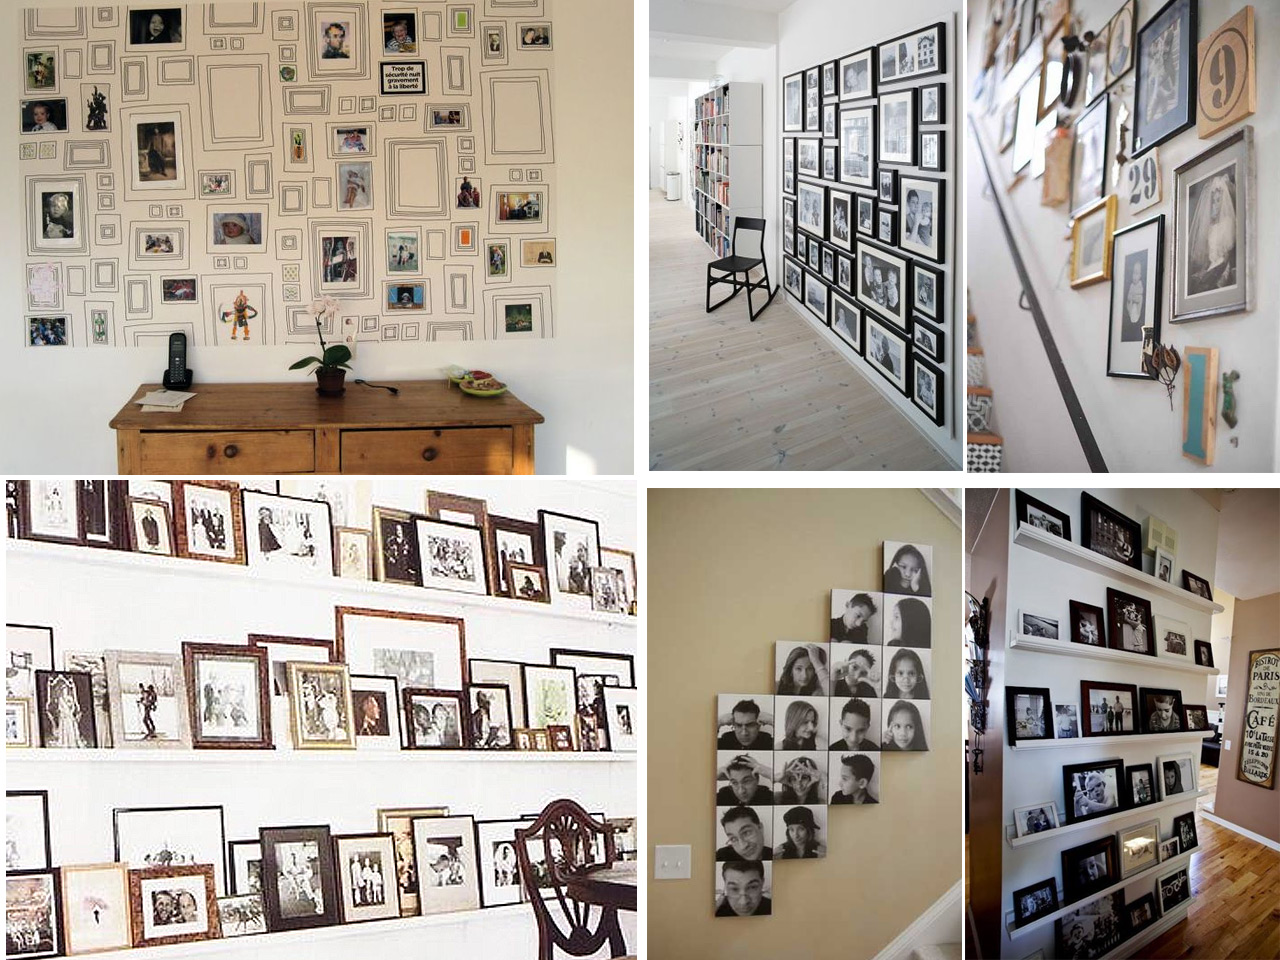 60 brillantes ideas para decorar con fotos familiares - Decoracion para fotos ...